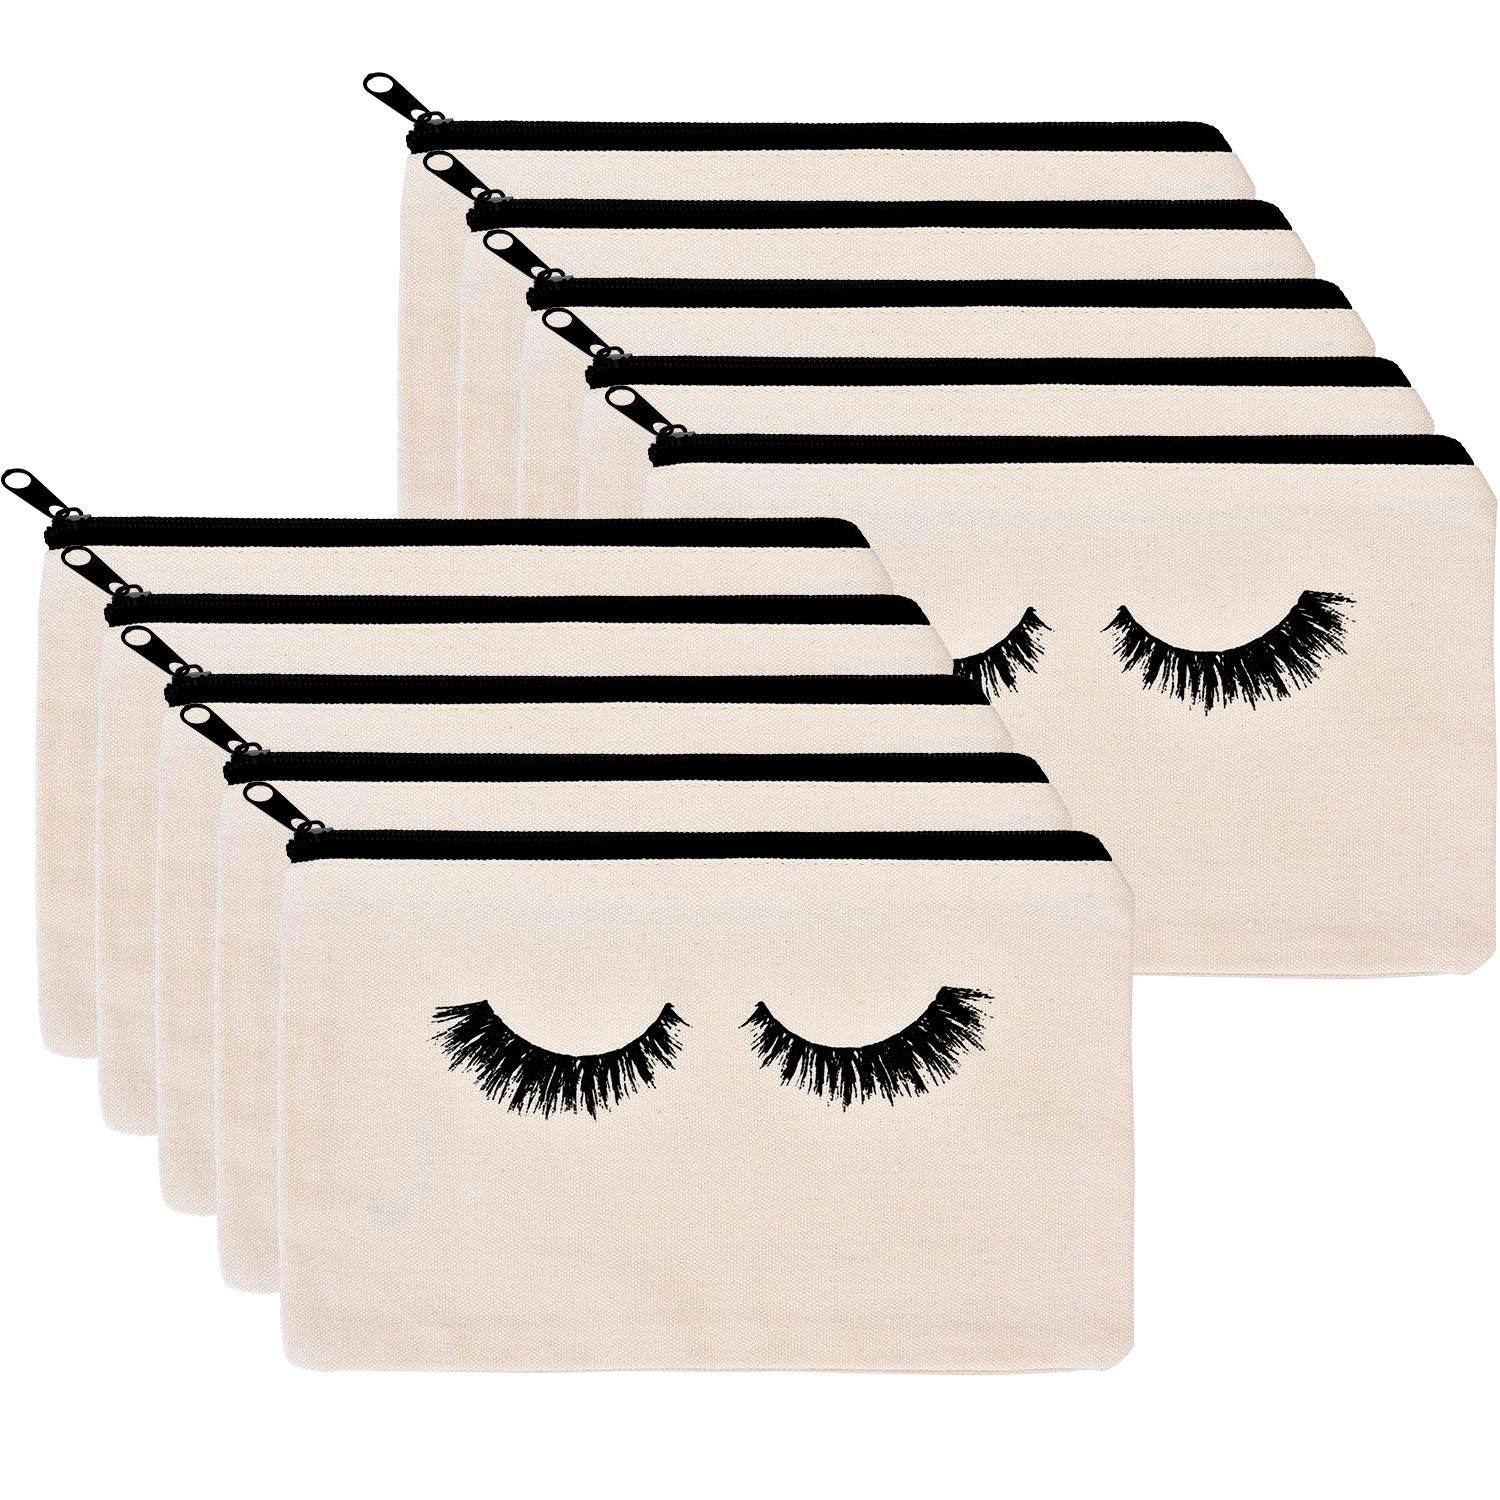 BBTO 10 Pieces Eyelash Makeup Bags Cosmetic Bags Travel Make up Pouches with Zipper for Women Girls